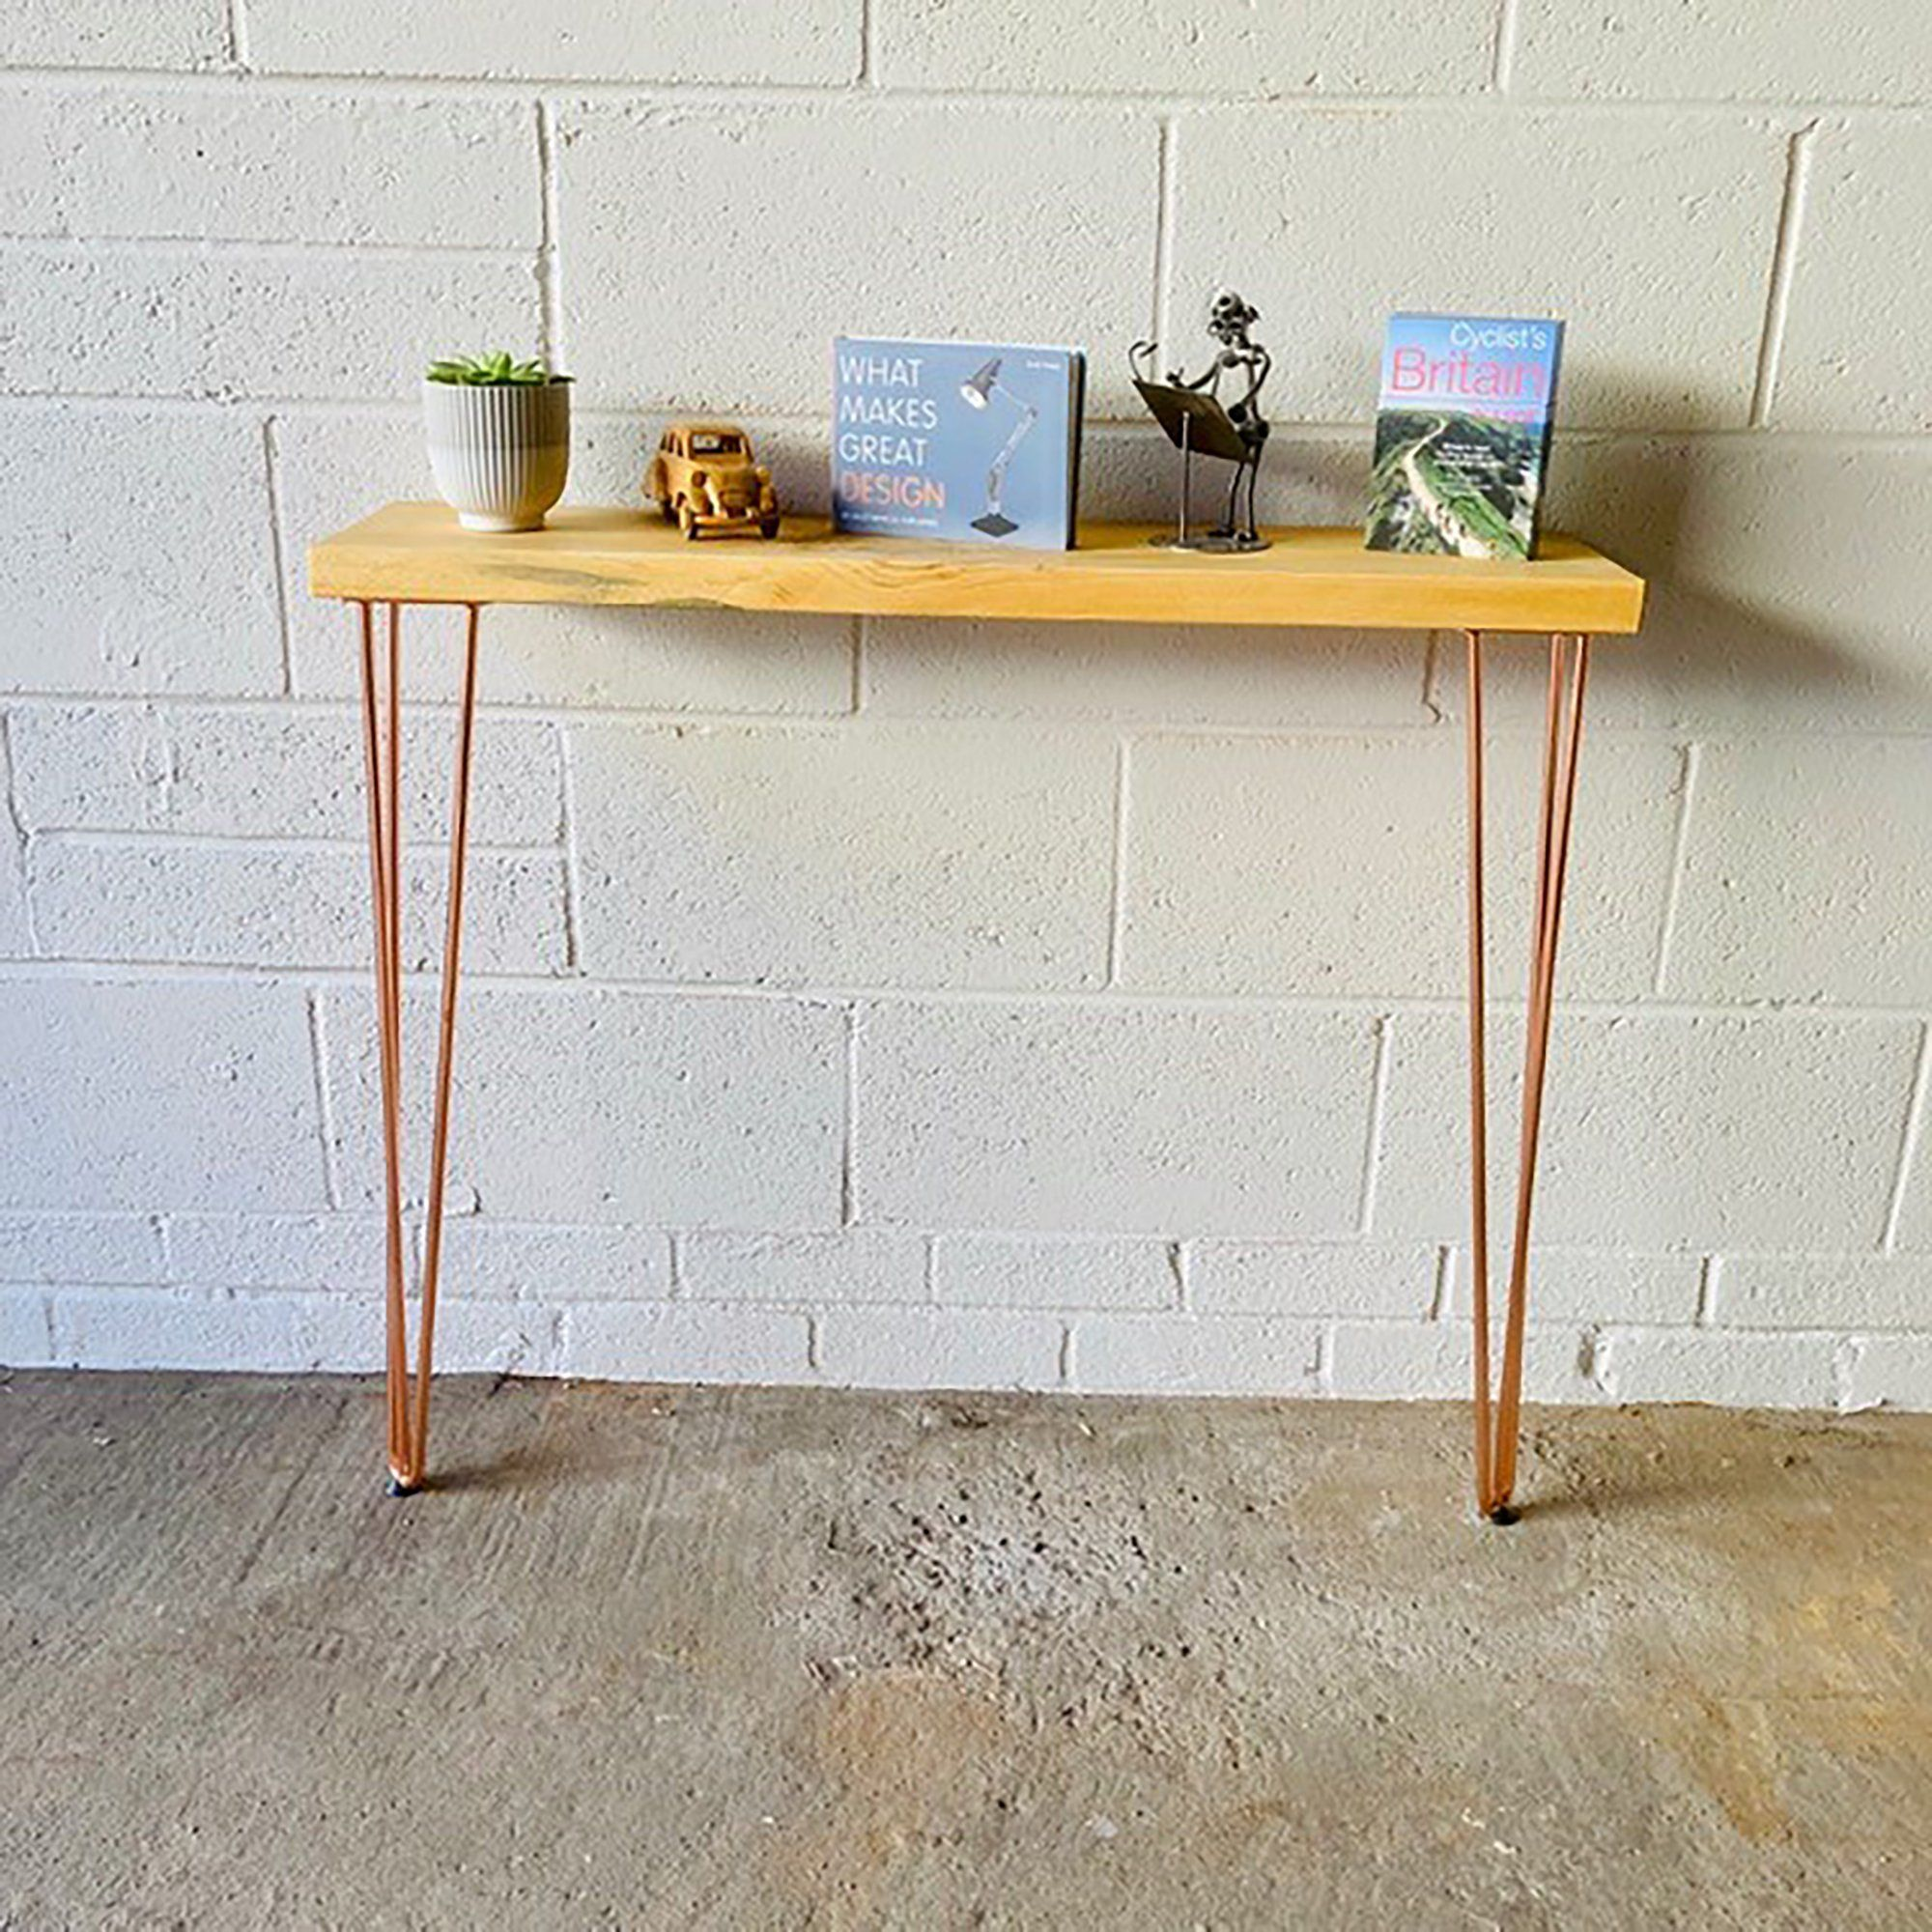 Console Table/Radiator Table 140cm x 22cm Industrial Urban Contemporary With Metal Hairpin Legs - Clear Coat / Walnut / 140cm